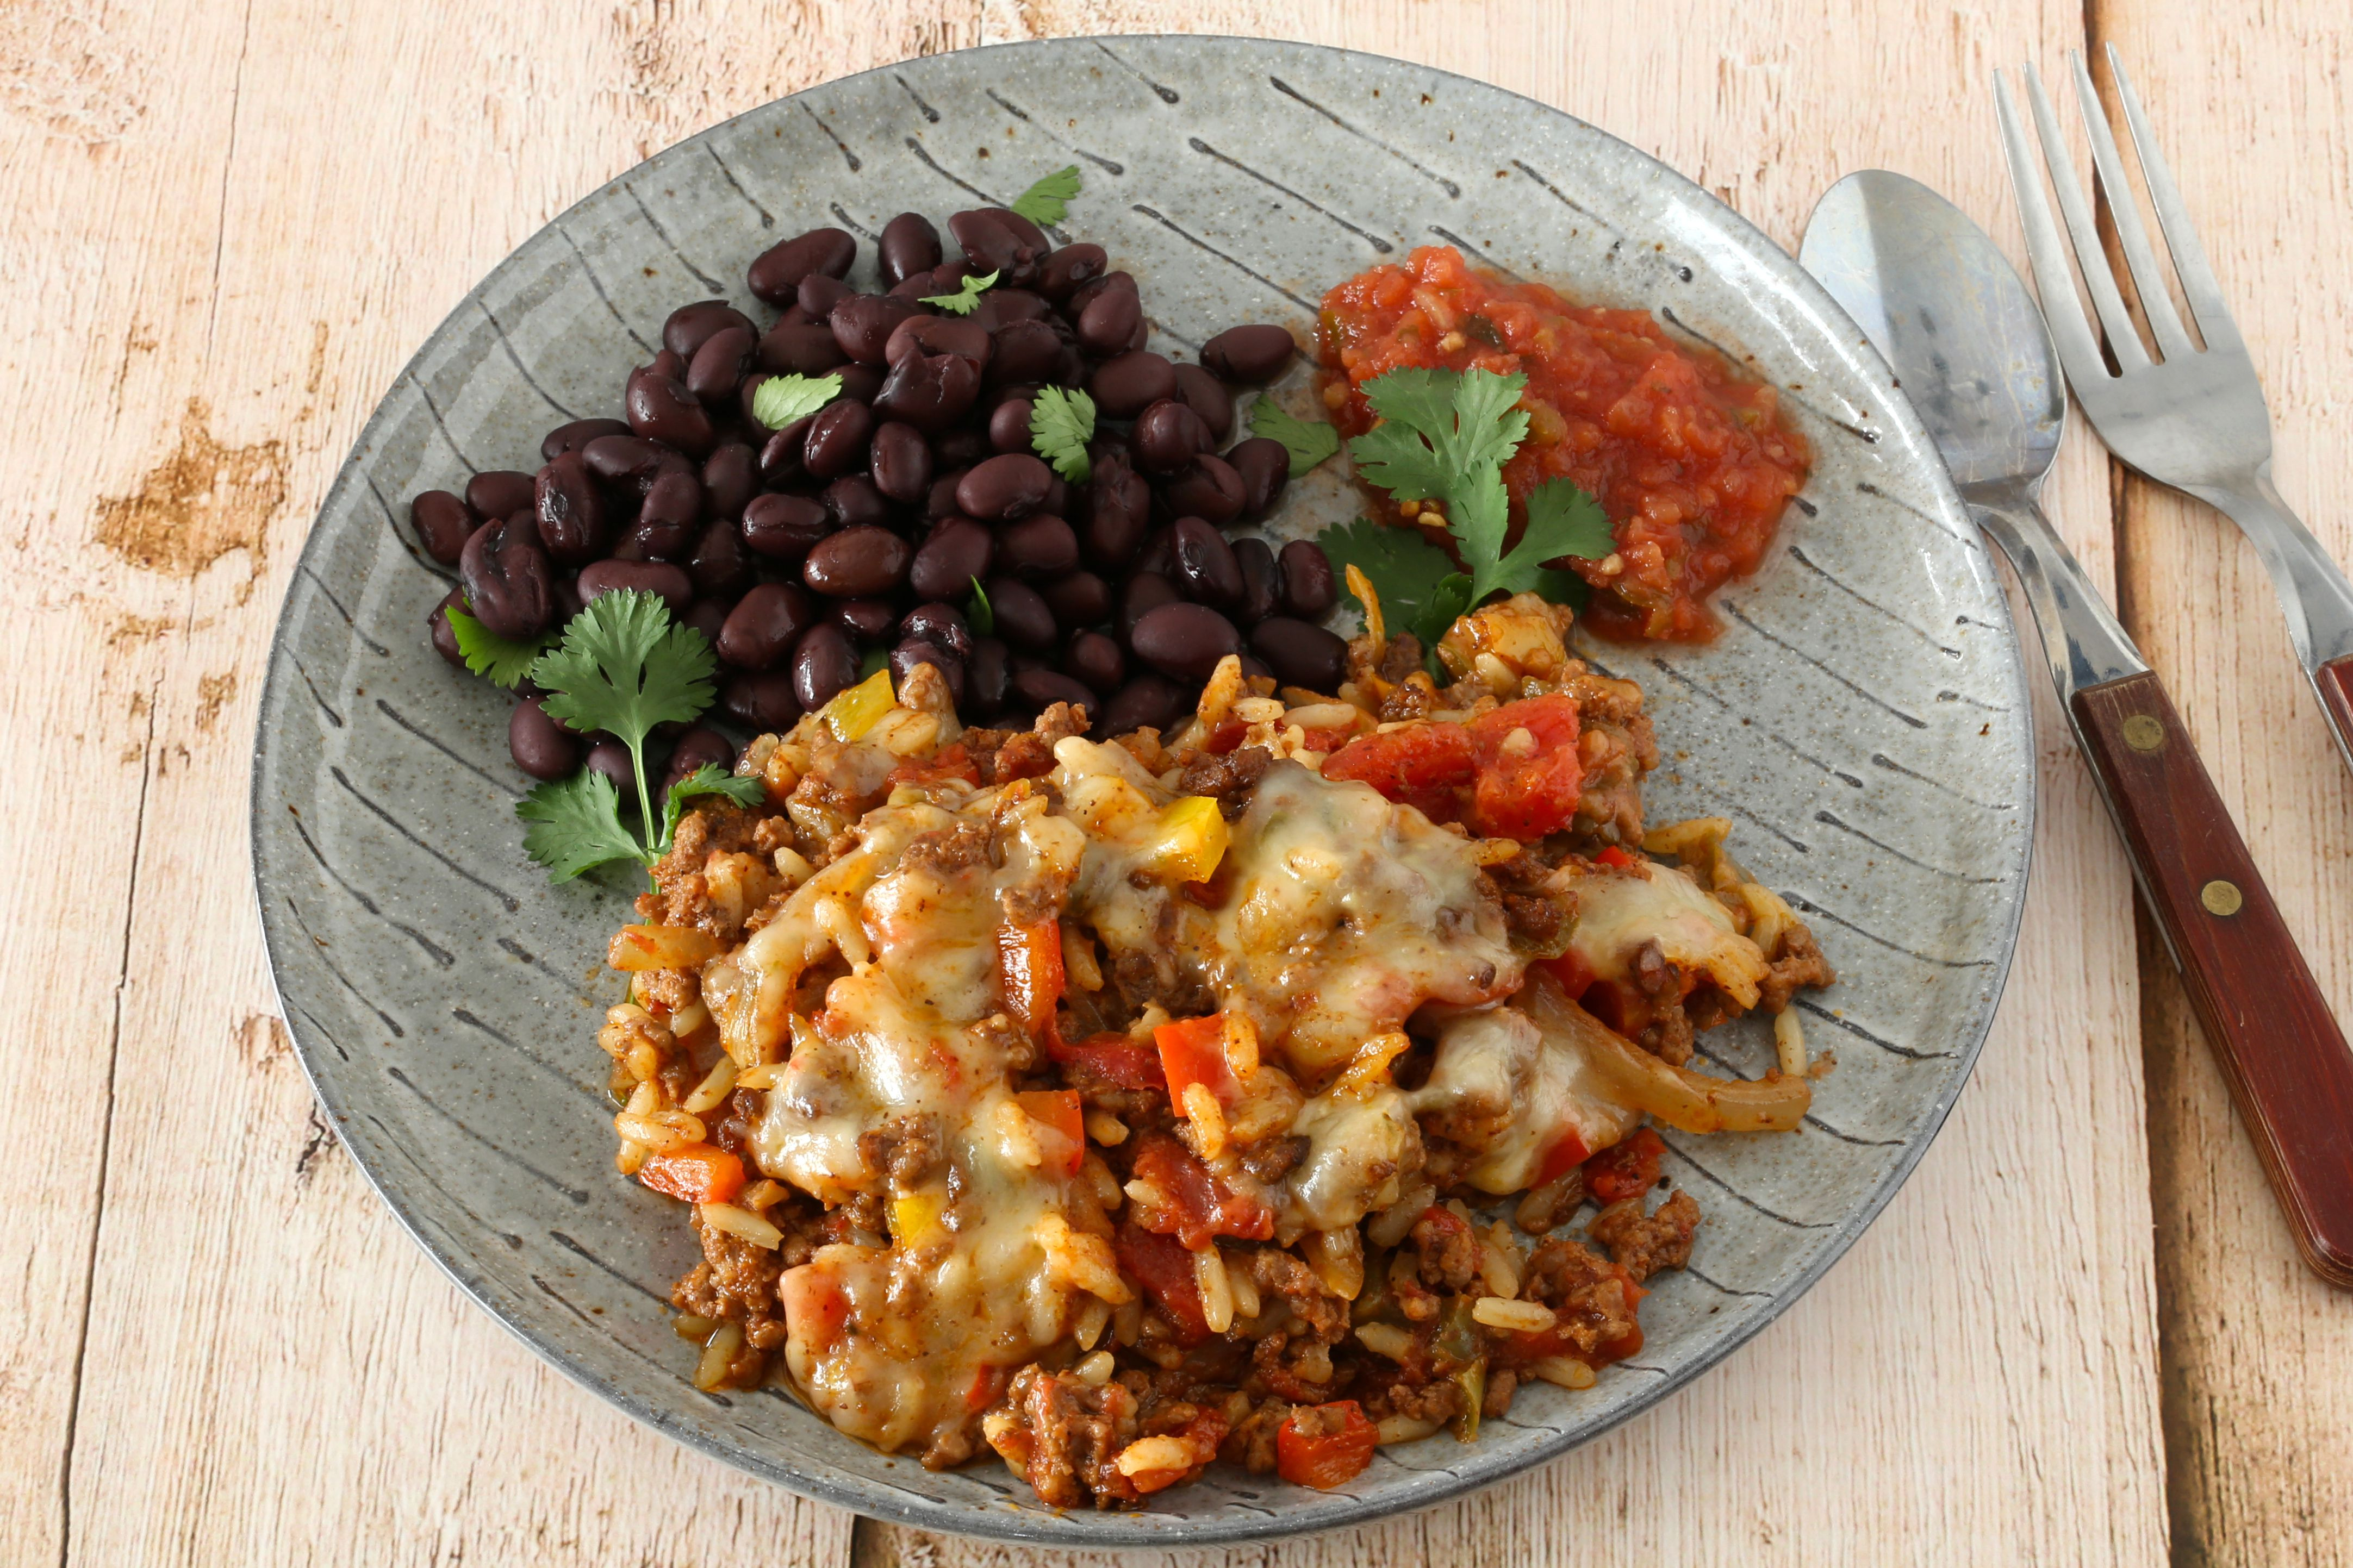 Plate with black beans and ground beef and rice casserole.